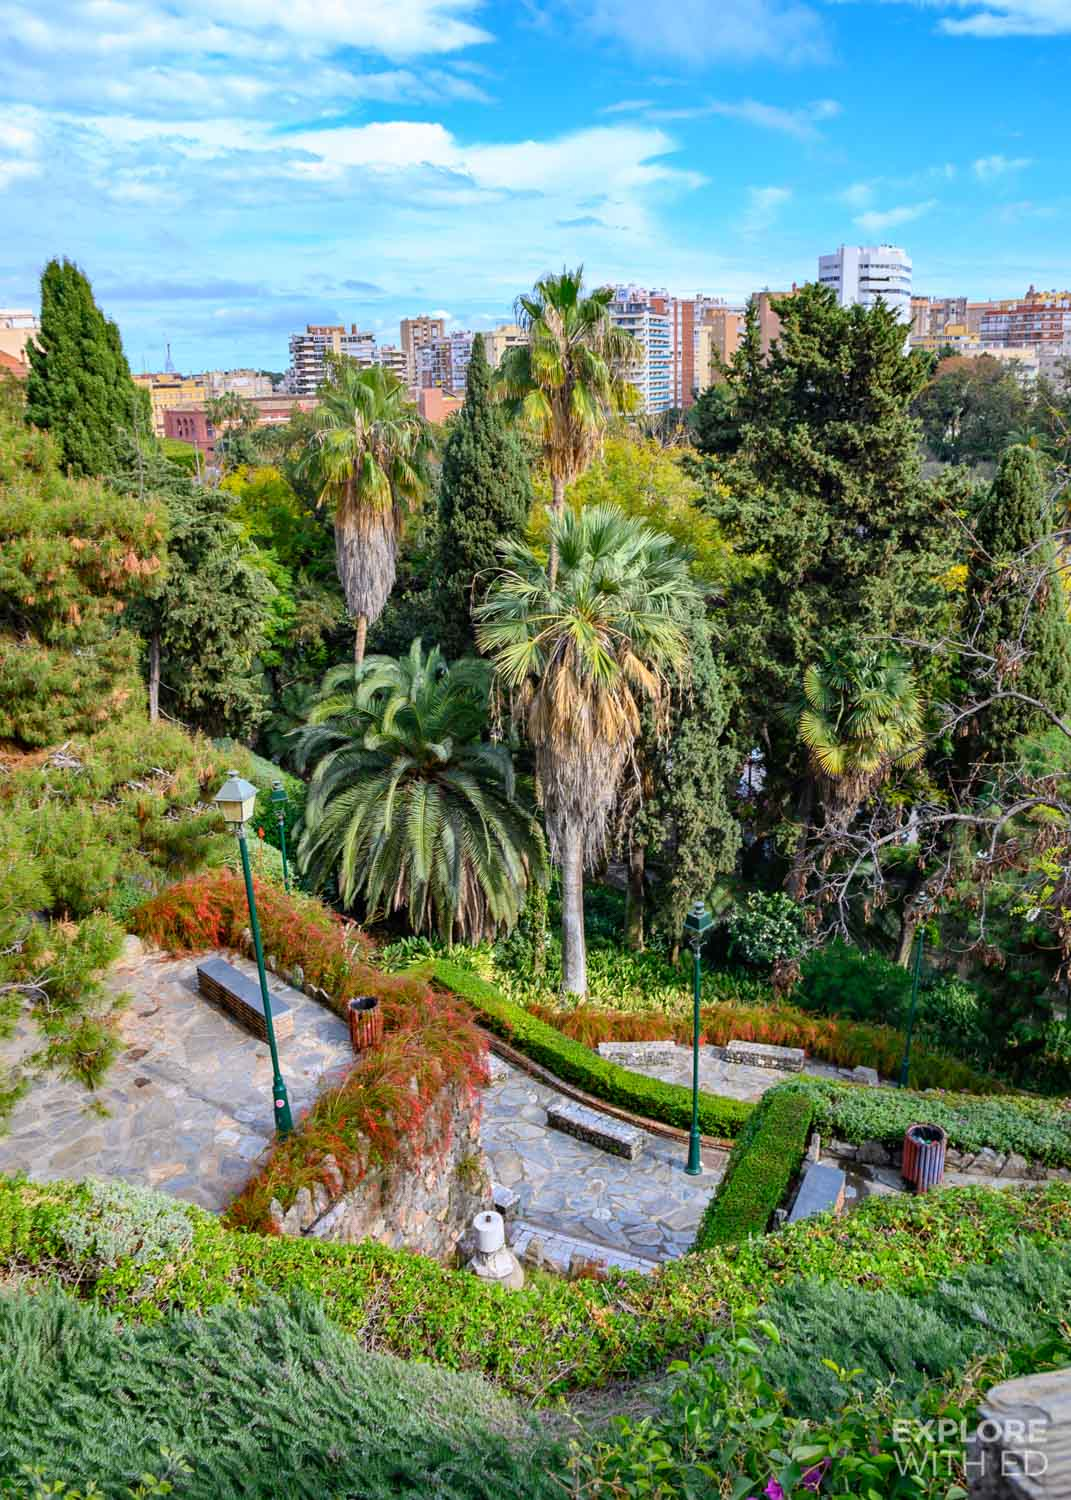 Parks and gardens of Malaga leading up to Gibralfaro